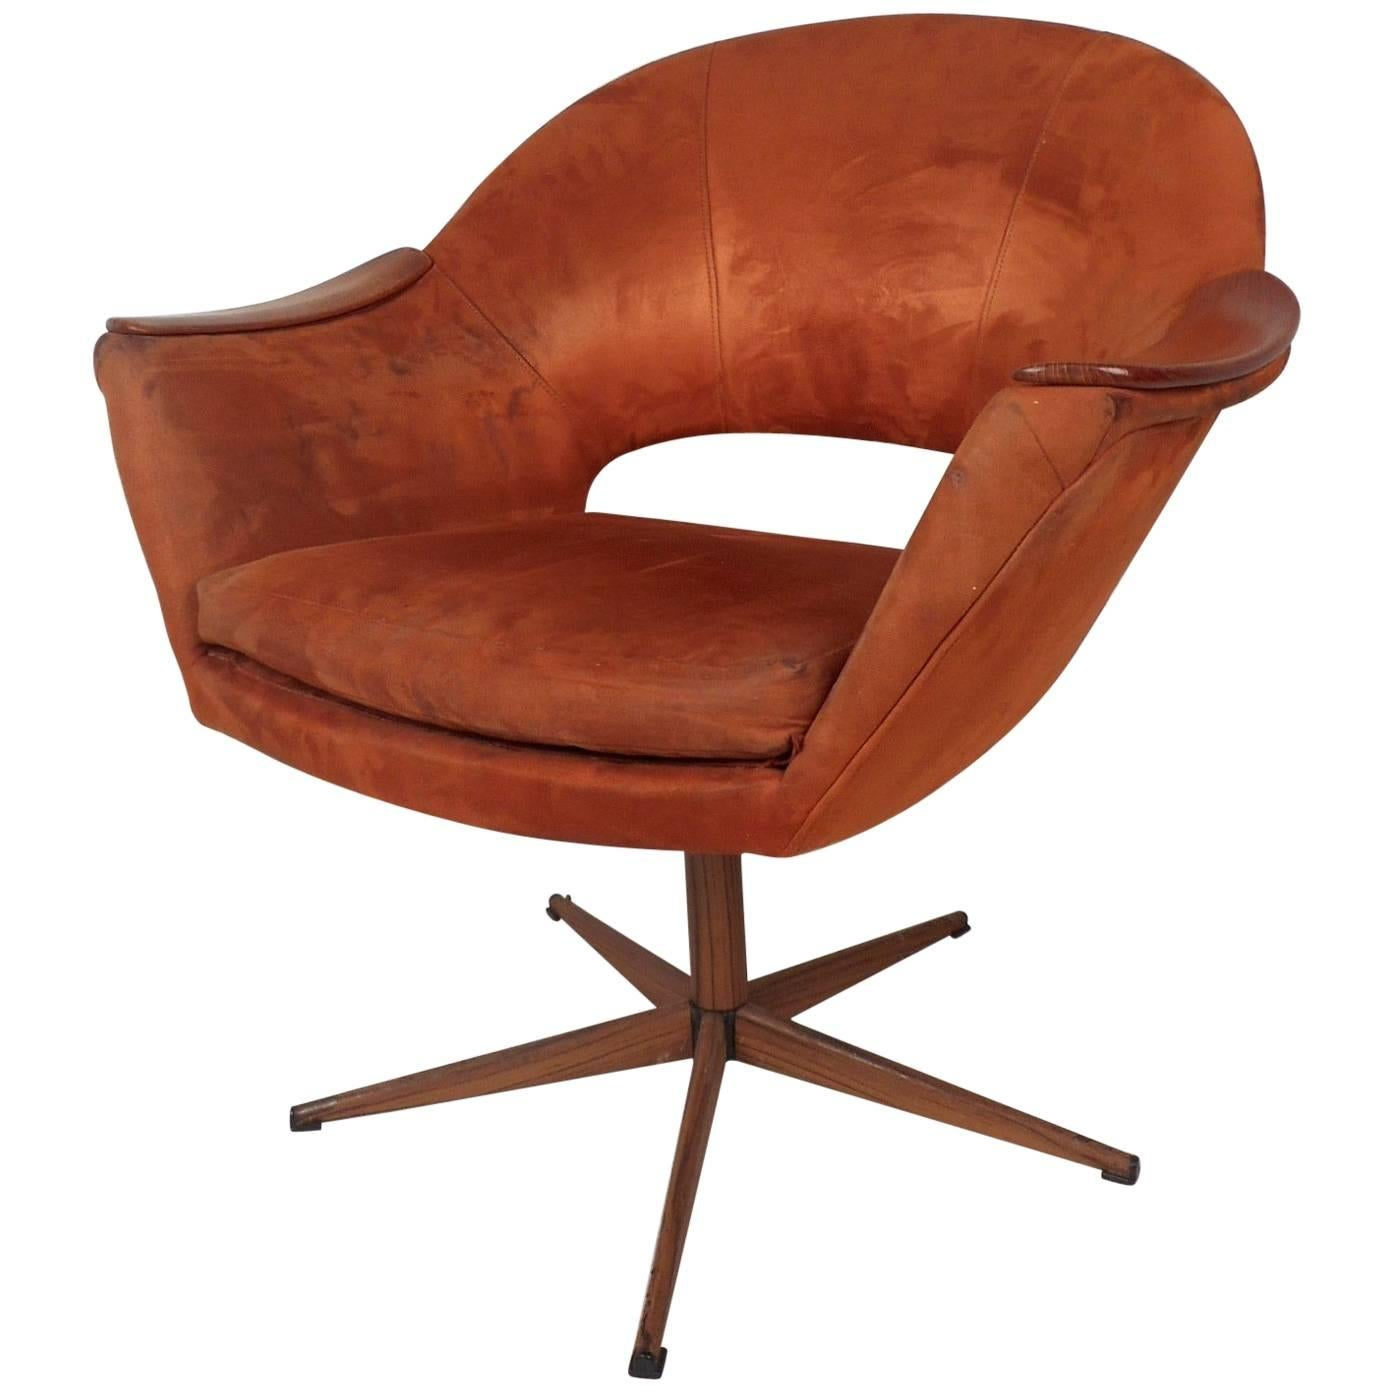 Unique Lounge Chair Unique Mid Century Swivel Lounge Chair